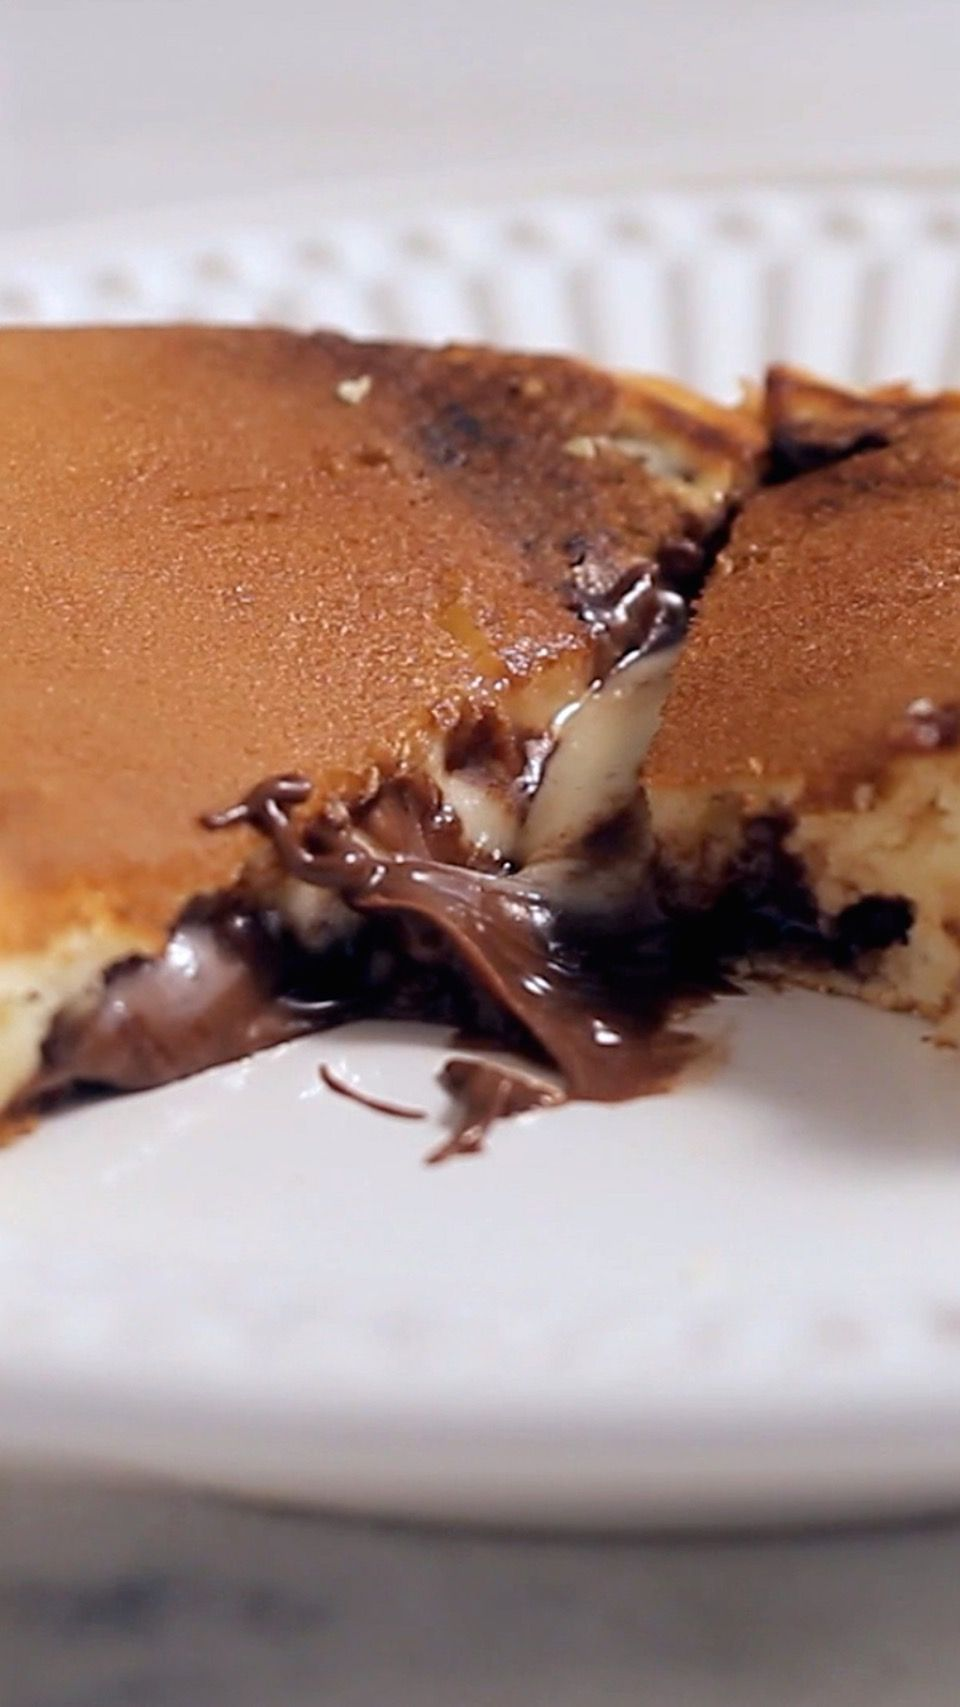 Recipe with video instructions: Nutella Stuffed Pancake recipe Ingredients: 1 cup flour, 2 tablespoons sugar, 2 teaspoons baking powder, ½ teaspoon salt, 1 cup of milk, 2 tablespoons melted butter, 1 egg, ½ cup Nutella, Oil